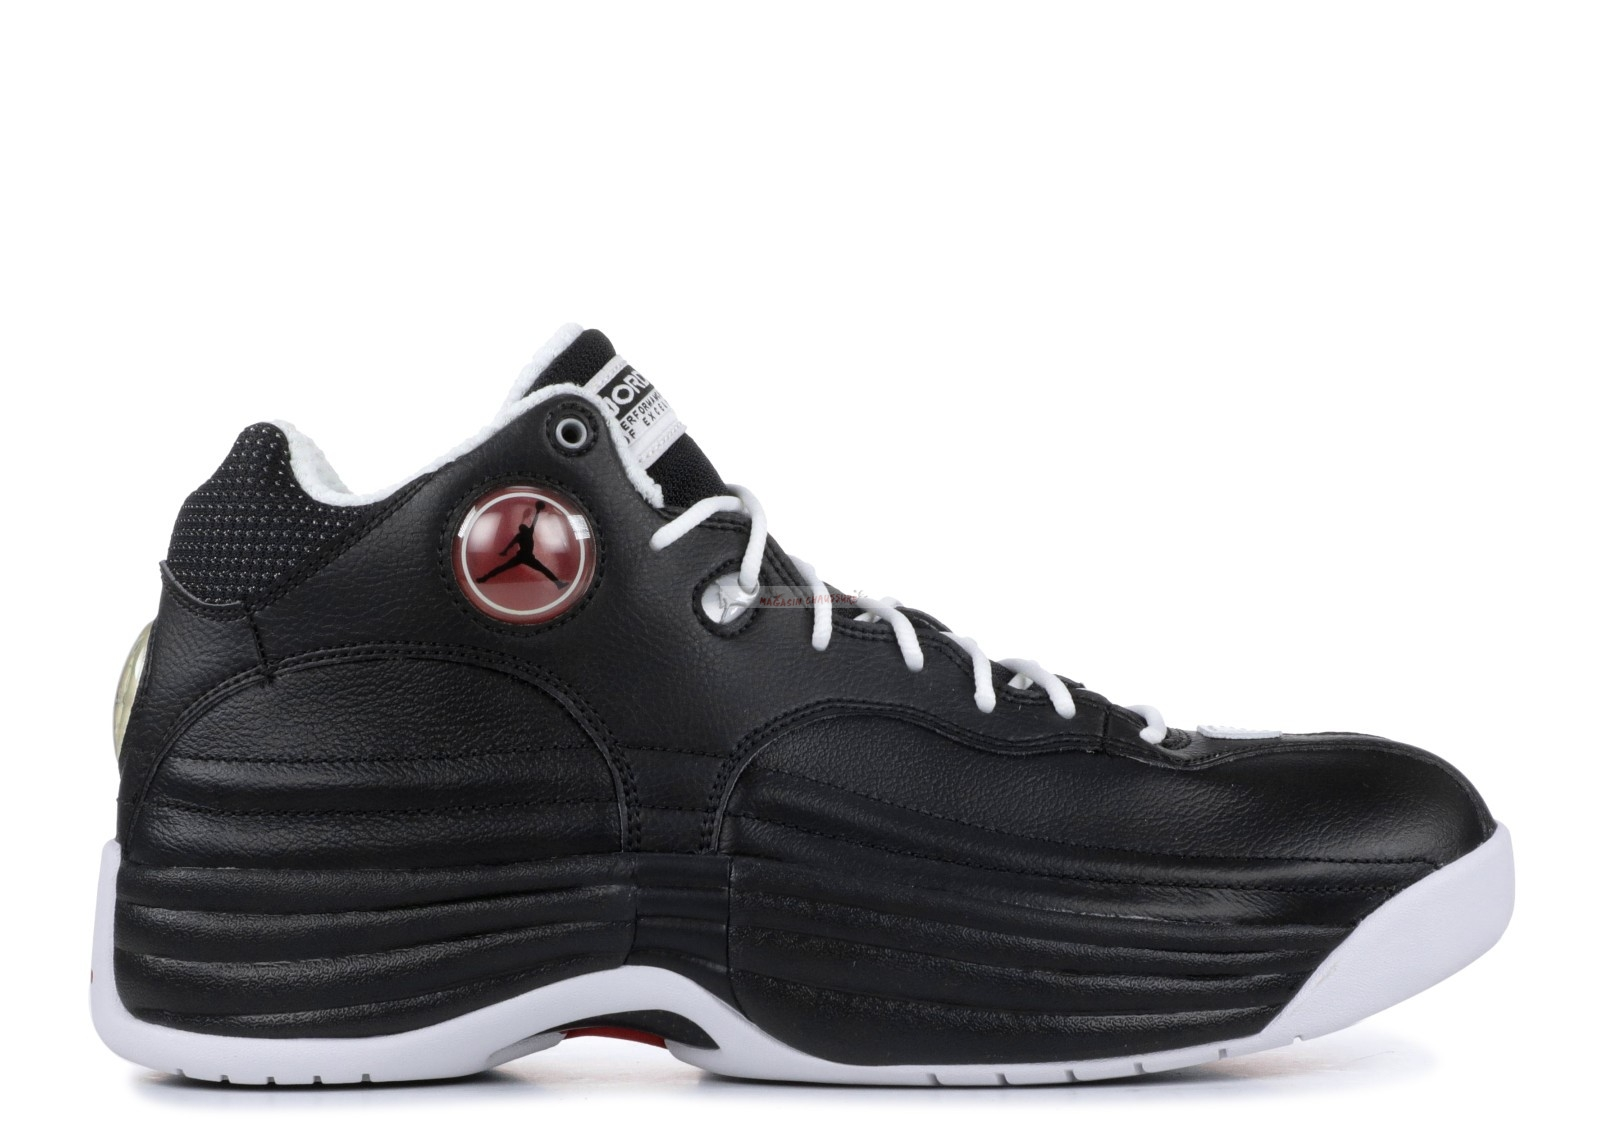 Air Jordan Jumpman Team 1 Noir (644938-002) Chaussure de Basket